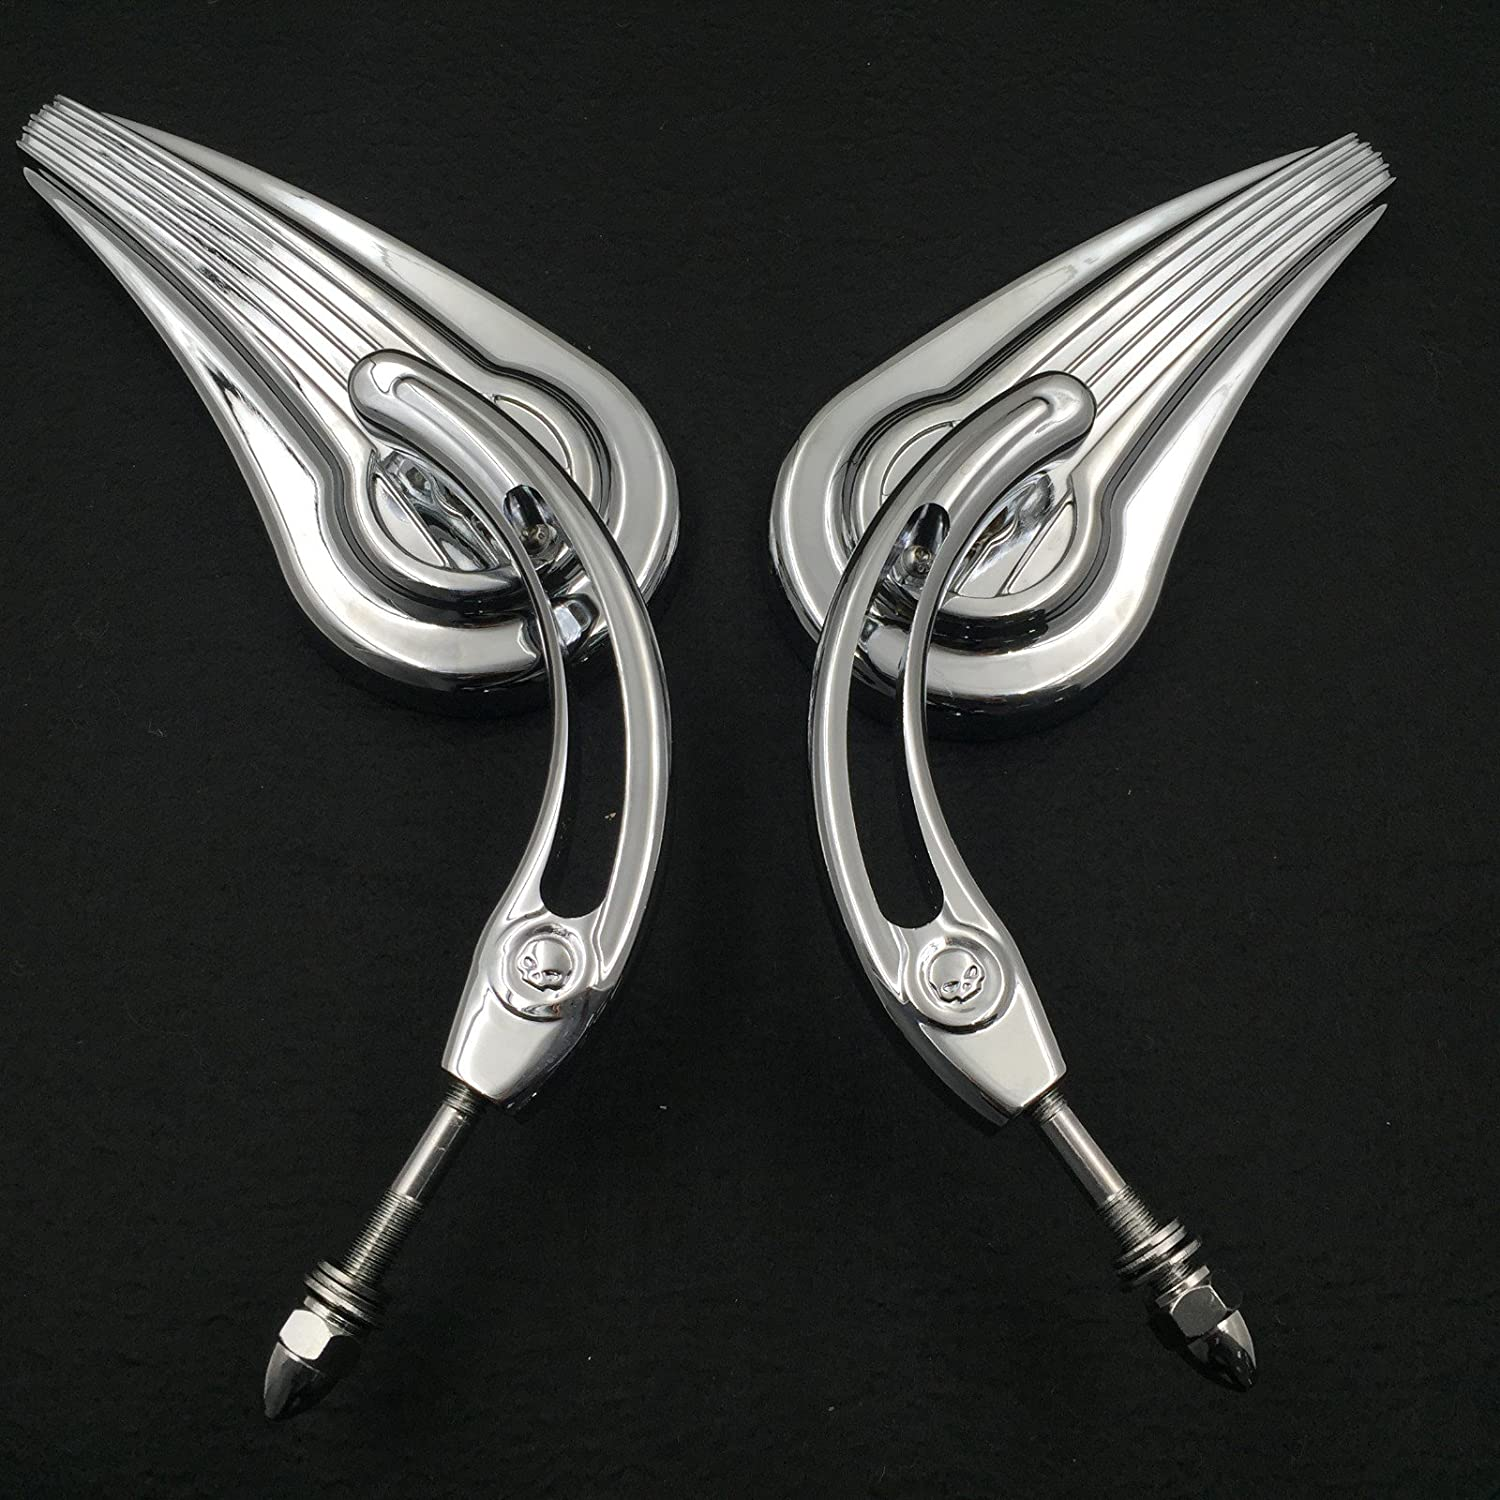 HTT Motorcycle Chrome Raindrop Side Mirrors For 1984 and up Harley Davidson Softtail Slim Fat Boy Heritage Softail Classic Deluxe Breakout Night Road Special